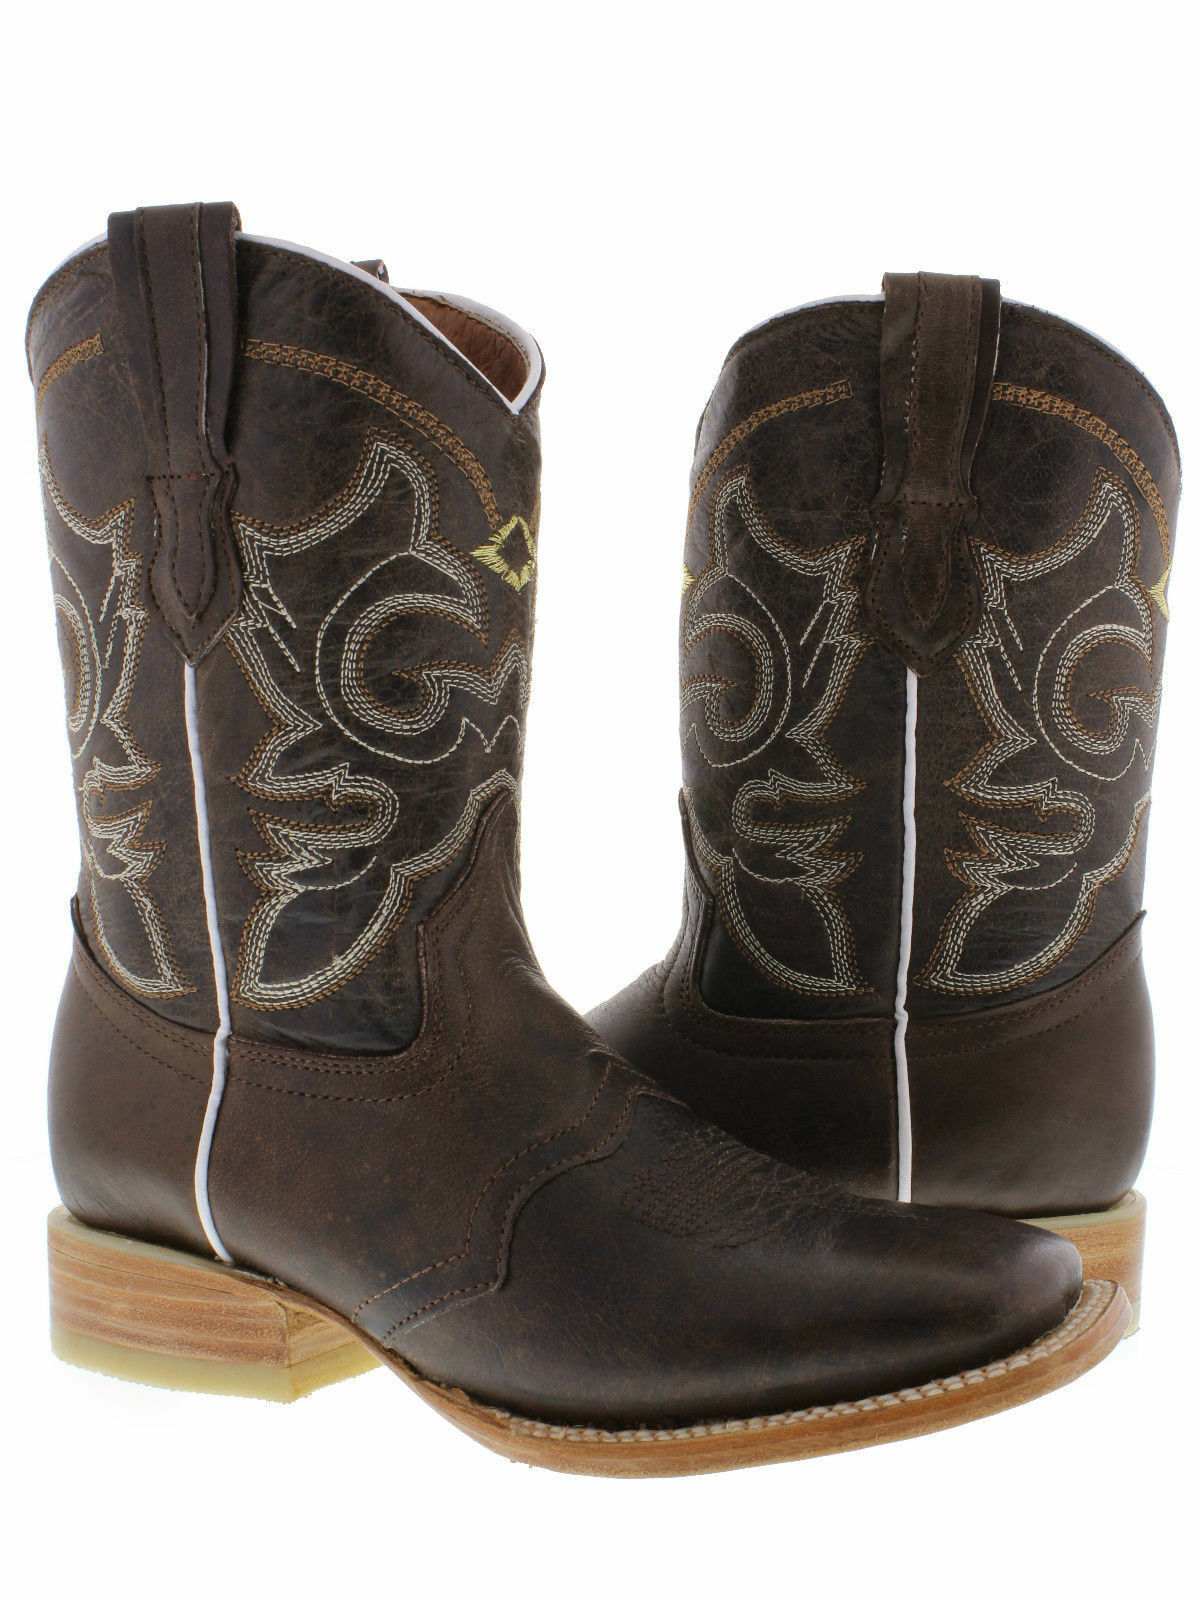 Women's Brown Mid Calf Cowboy Rodeo Leather Wear Casual Square Toe Boots